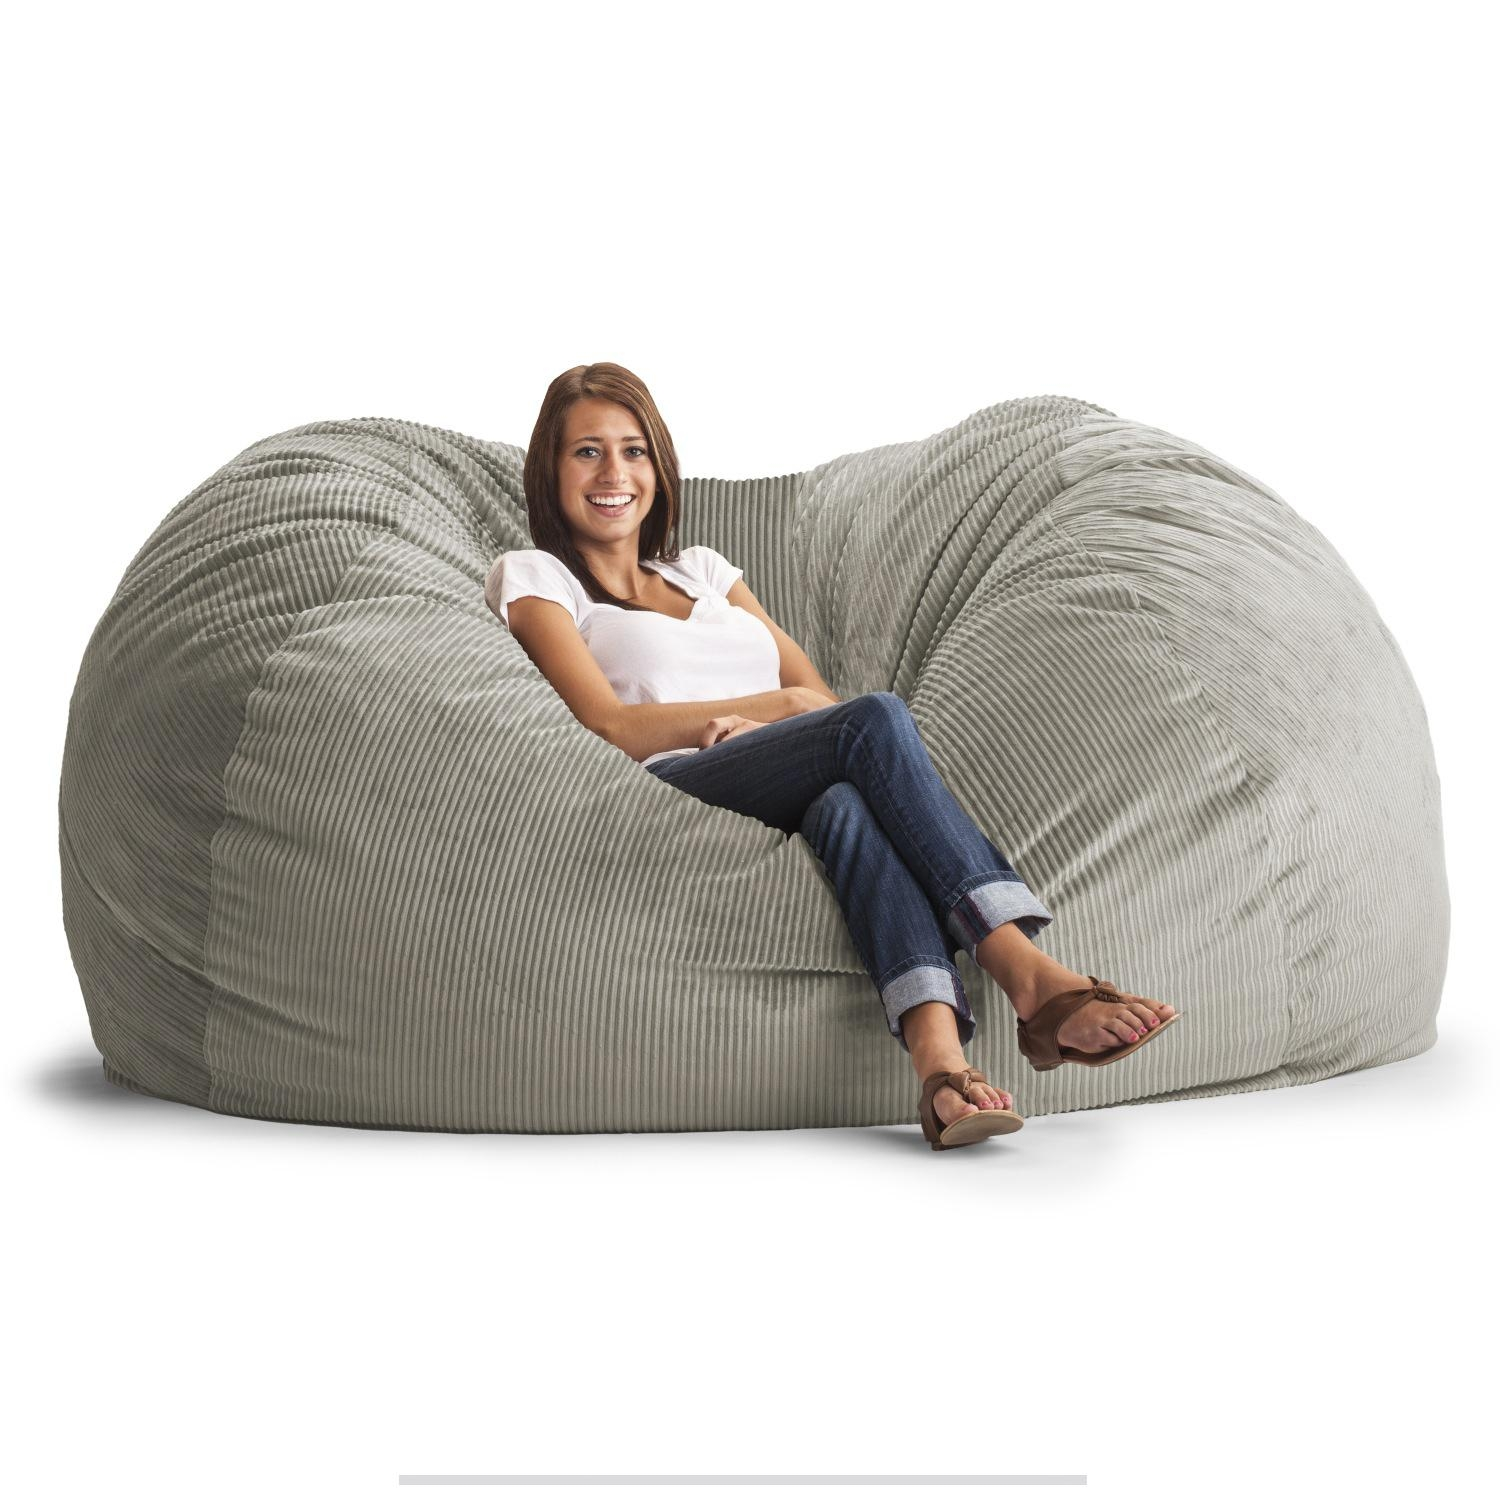 Furniture & Sofa: Fascinating Big Joe Lumin Bean Bag Chair With Inside Big Joe Sofas (View 5 of 20)